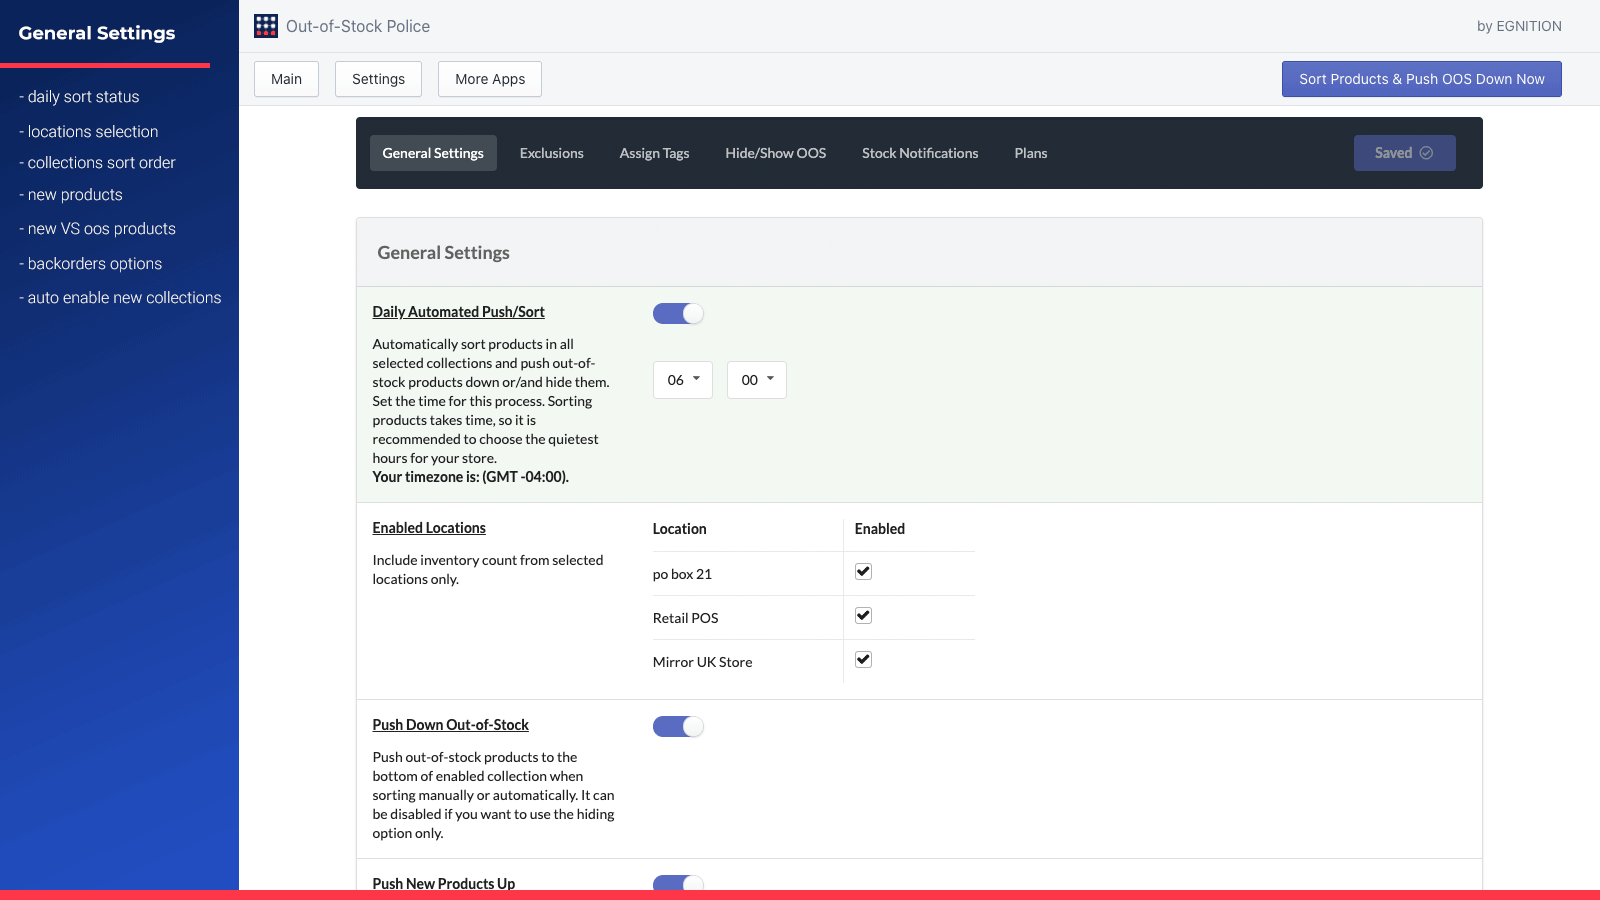 General Settings to push sold-out products down automatically